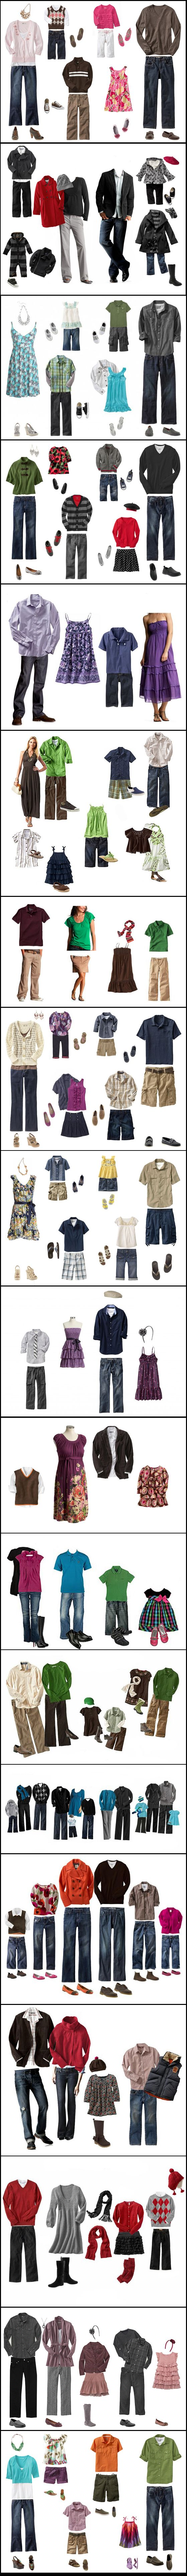 For families - coordinating outfit ideas!